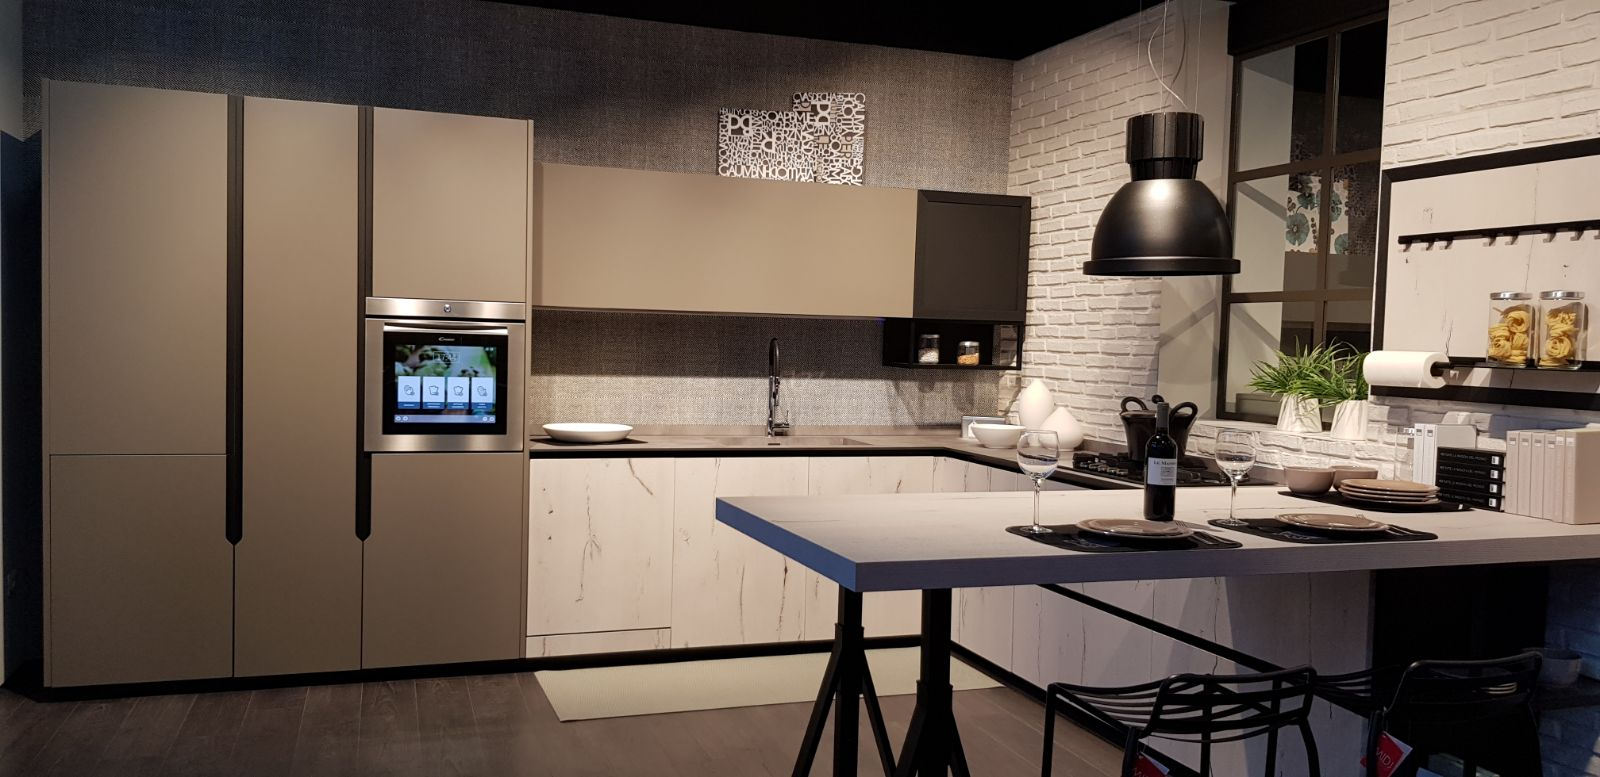 Stunning Cucine Lube Pamela Pictures - Home Design - joygree.info